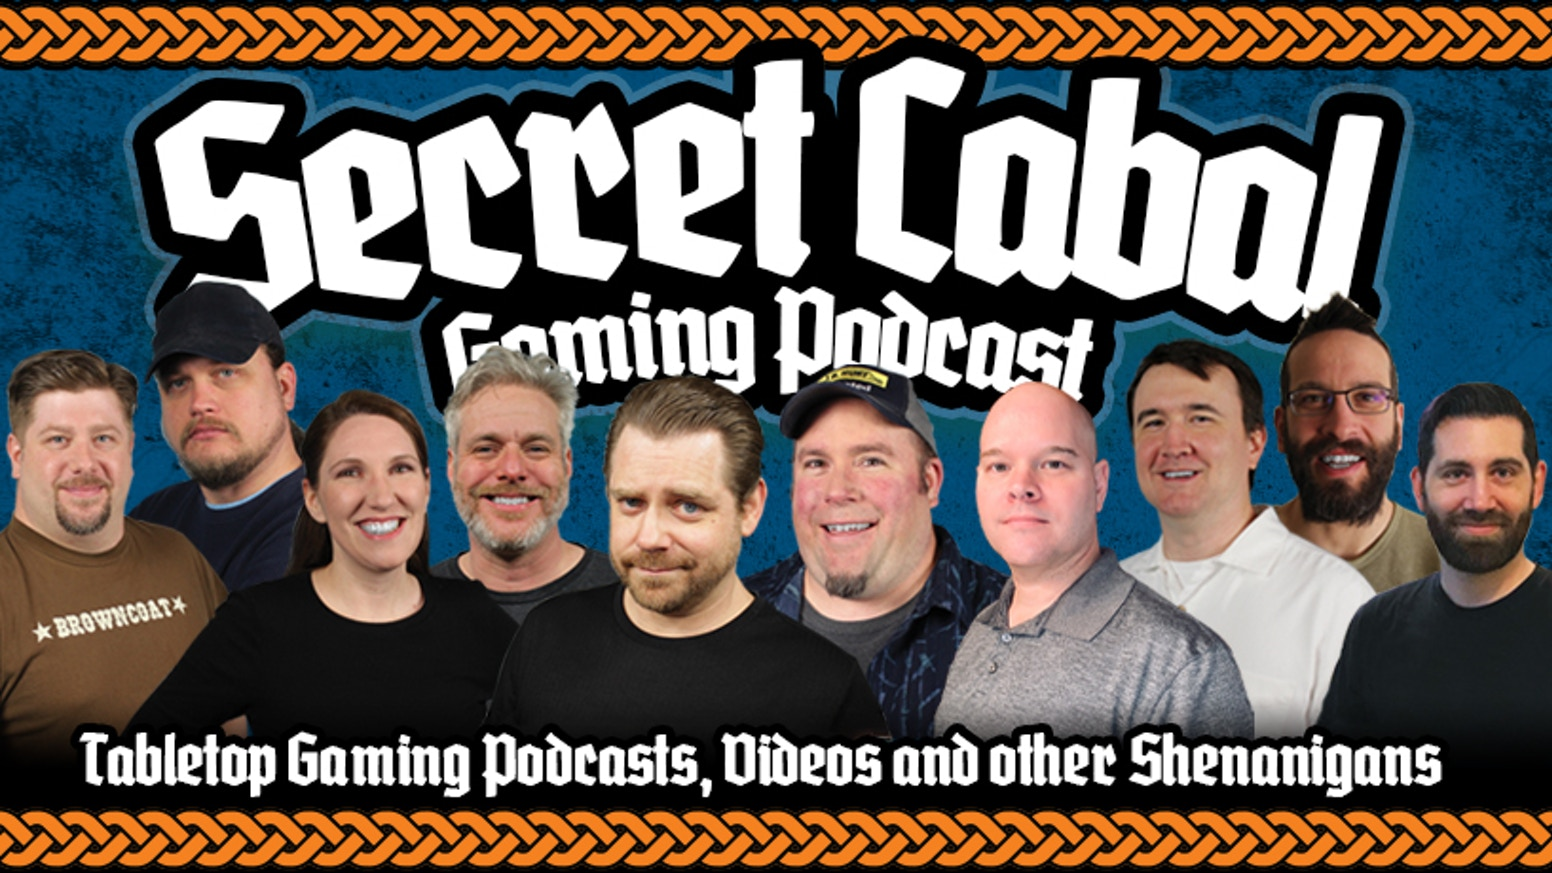 The Secret Cabal is ready for more crazy, wild, magnificent, bombastic and meshuggeneh tabletop gaming podcasts and videos in 2020!